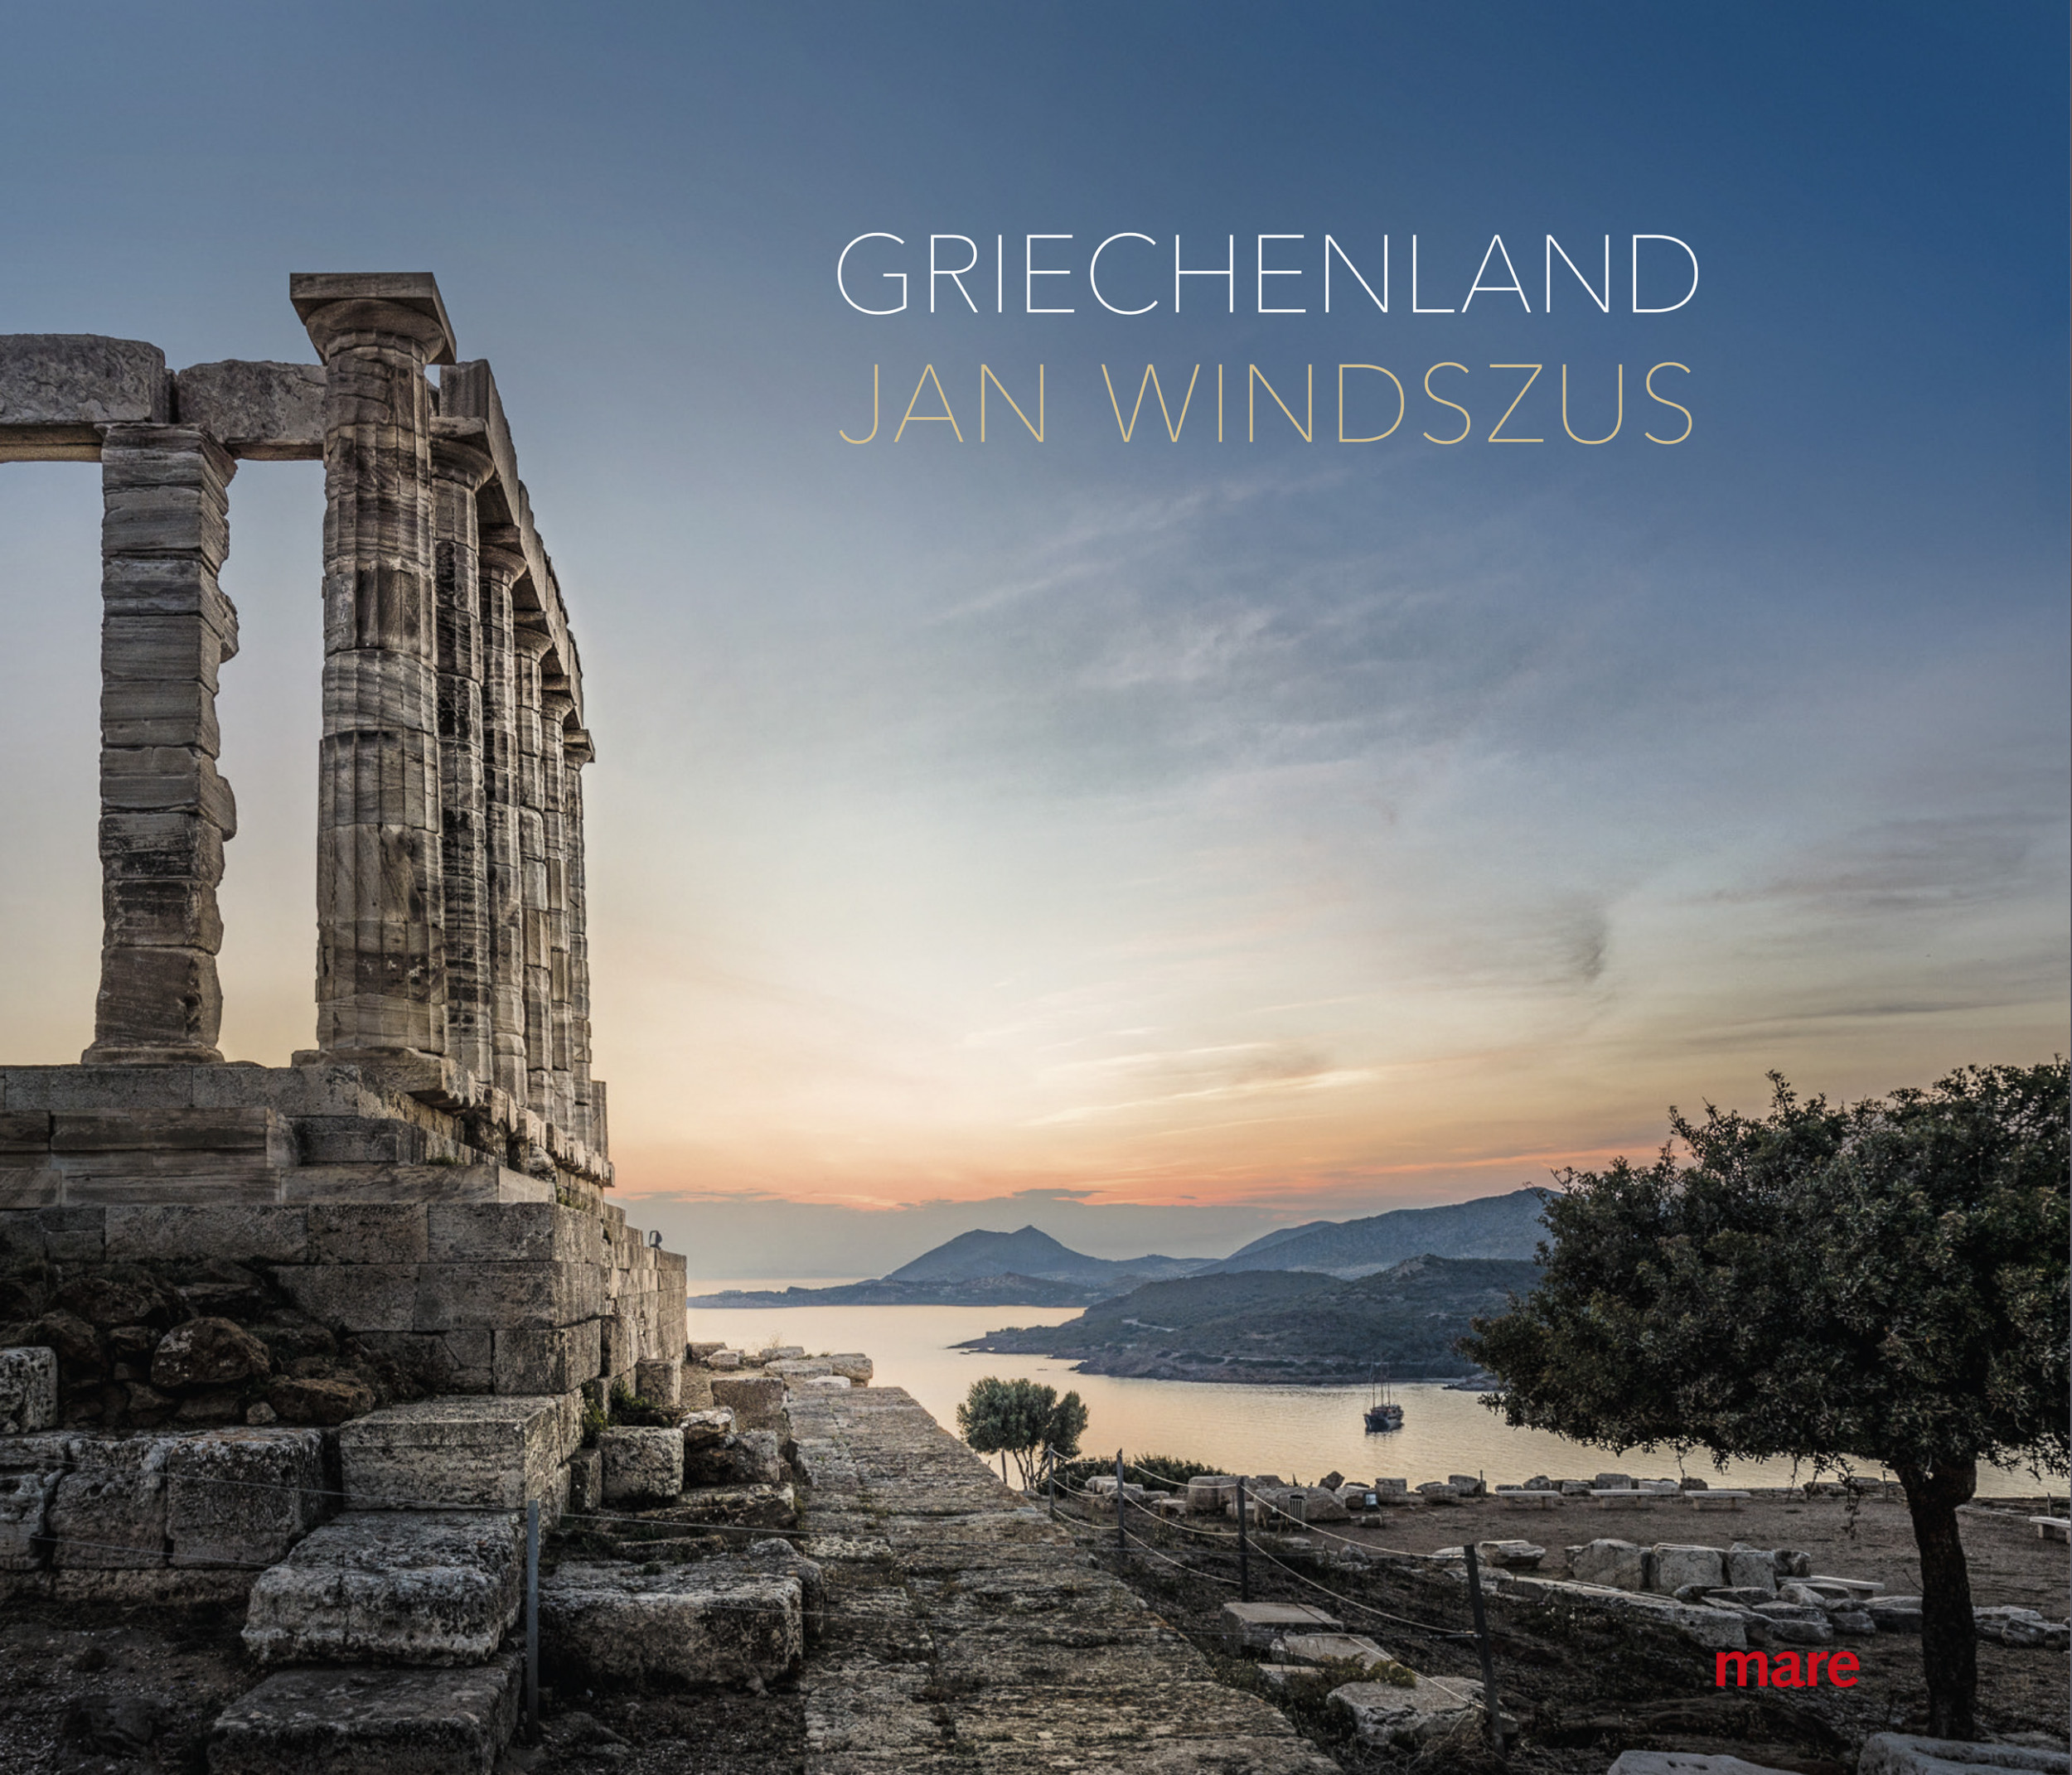 Greece - The book